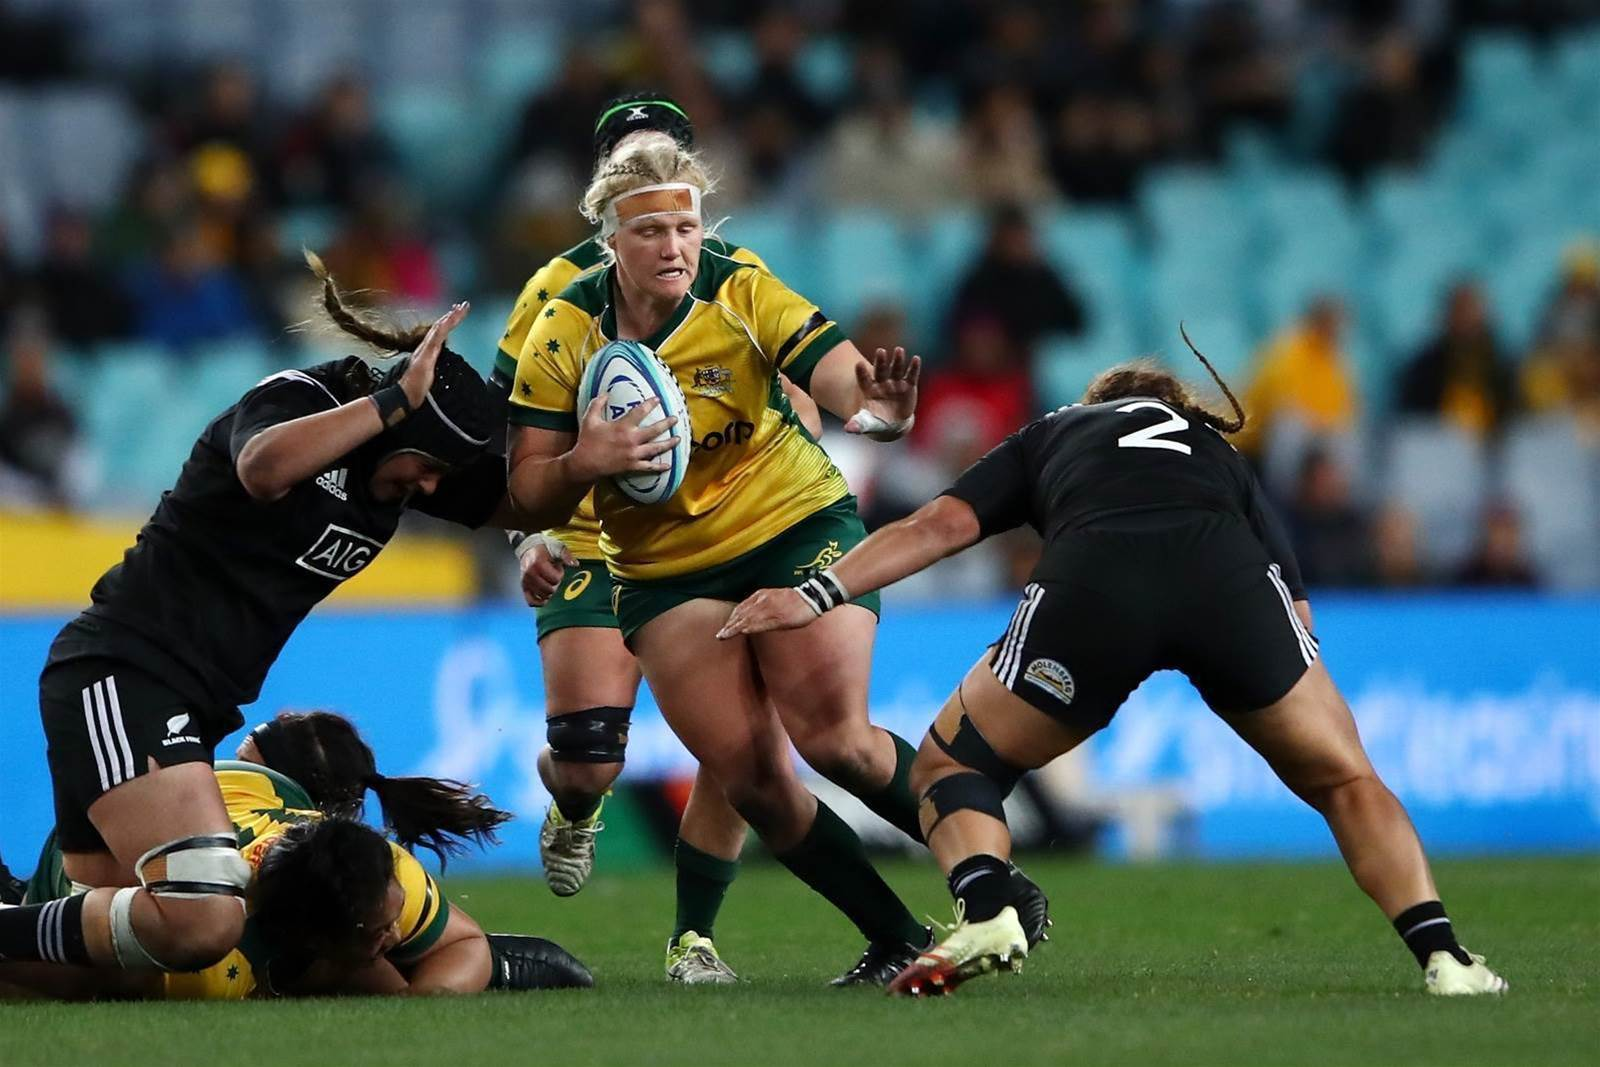 IN PICS: Wallaroos vs Black Ferns